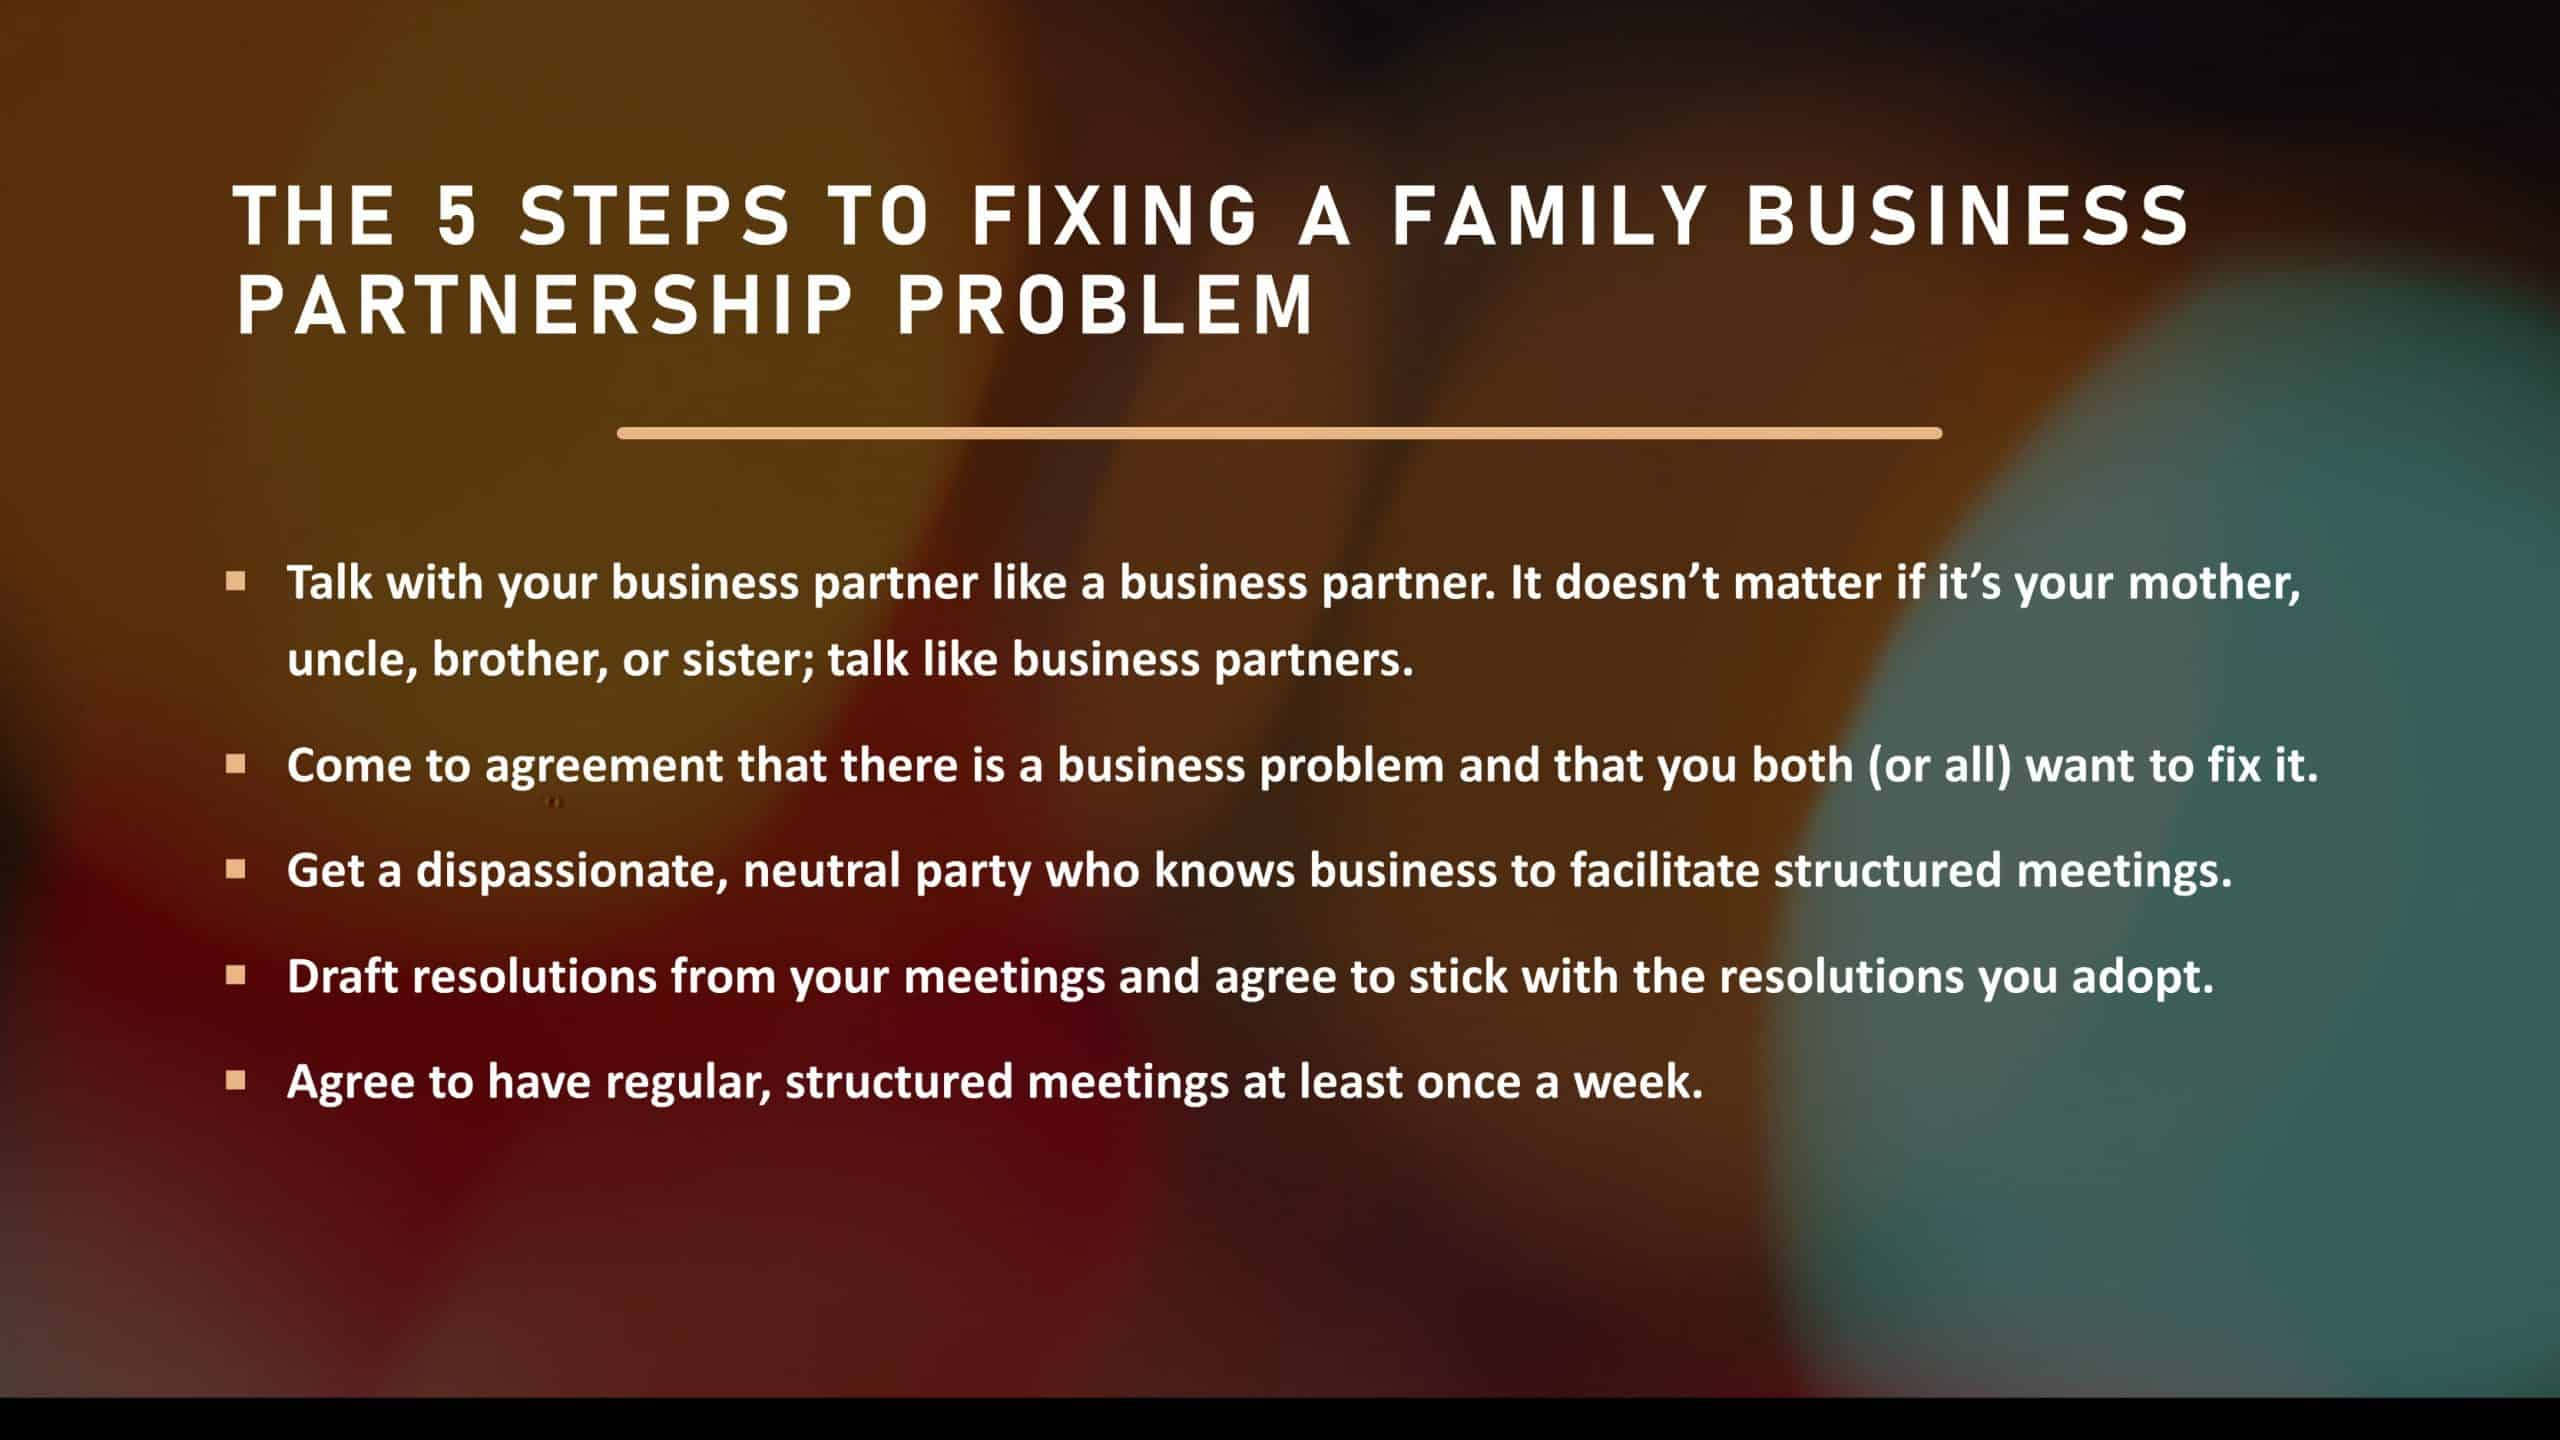 The 5 Steps to Fixing a Family Business Partnership